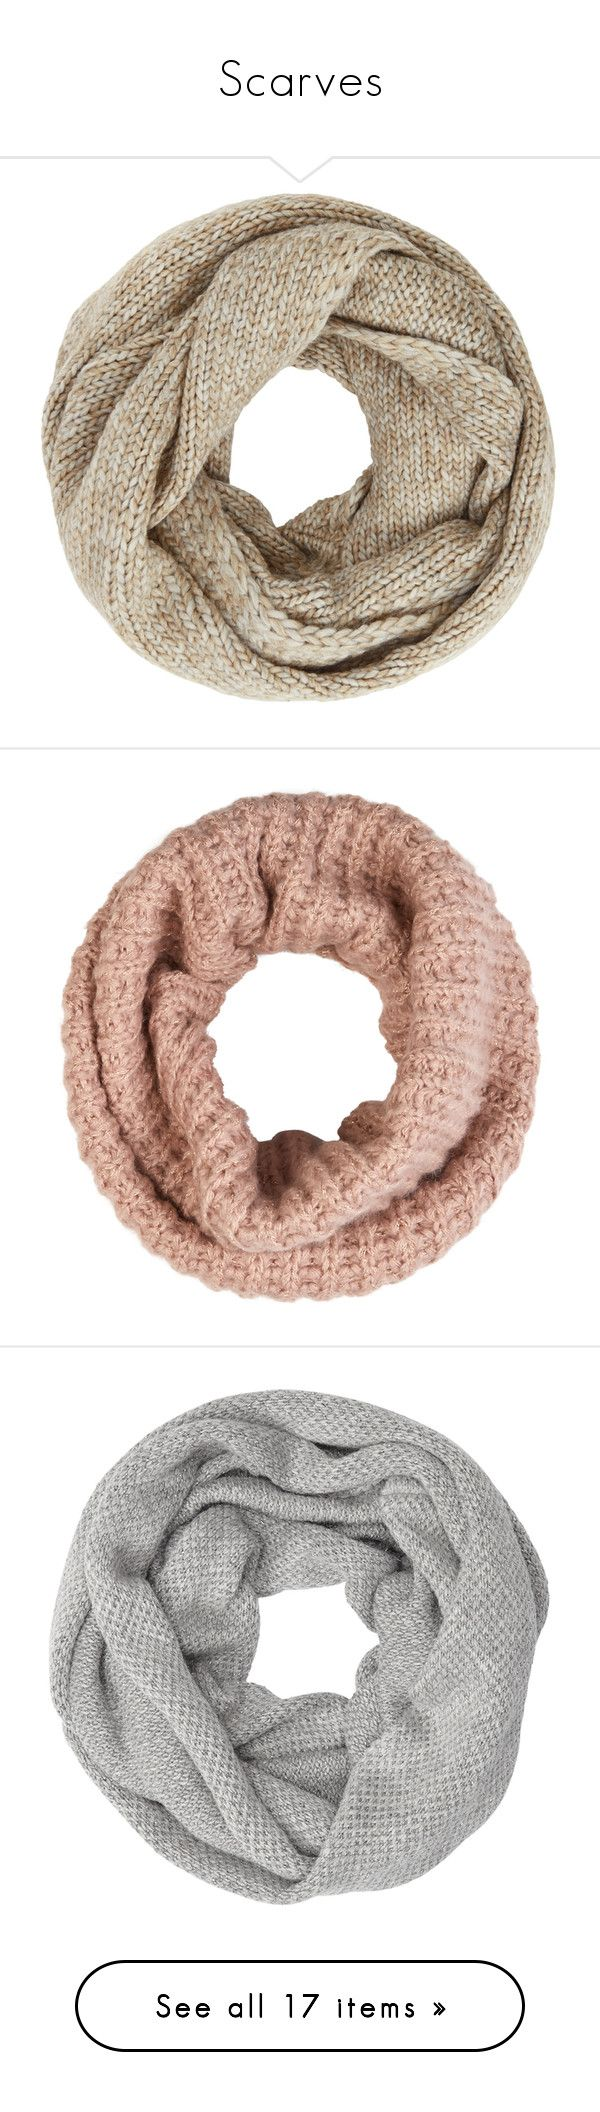 """""""Scarves"""" by qwerty-16-polyvore ❤ liked on Polyvore featuring accessories, scarves, extras, chunky scarves, john lewis, snood scarves, accessorize scarves, sparkly scarves, metallic scarves and metallic shawl"""